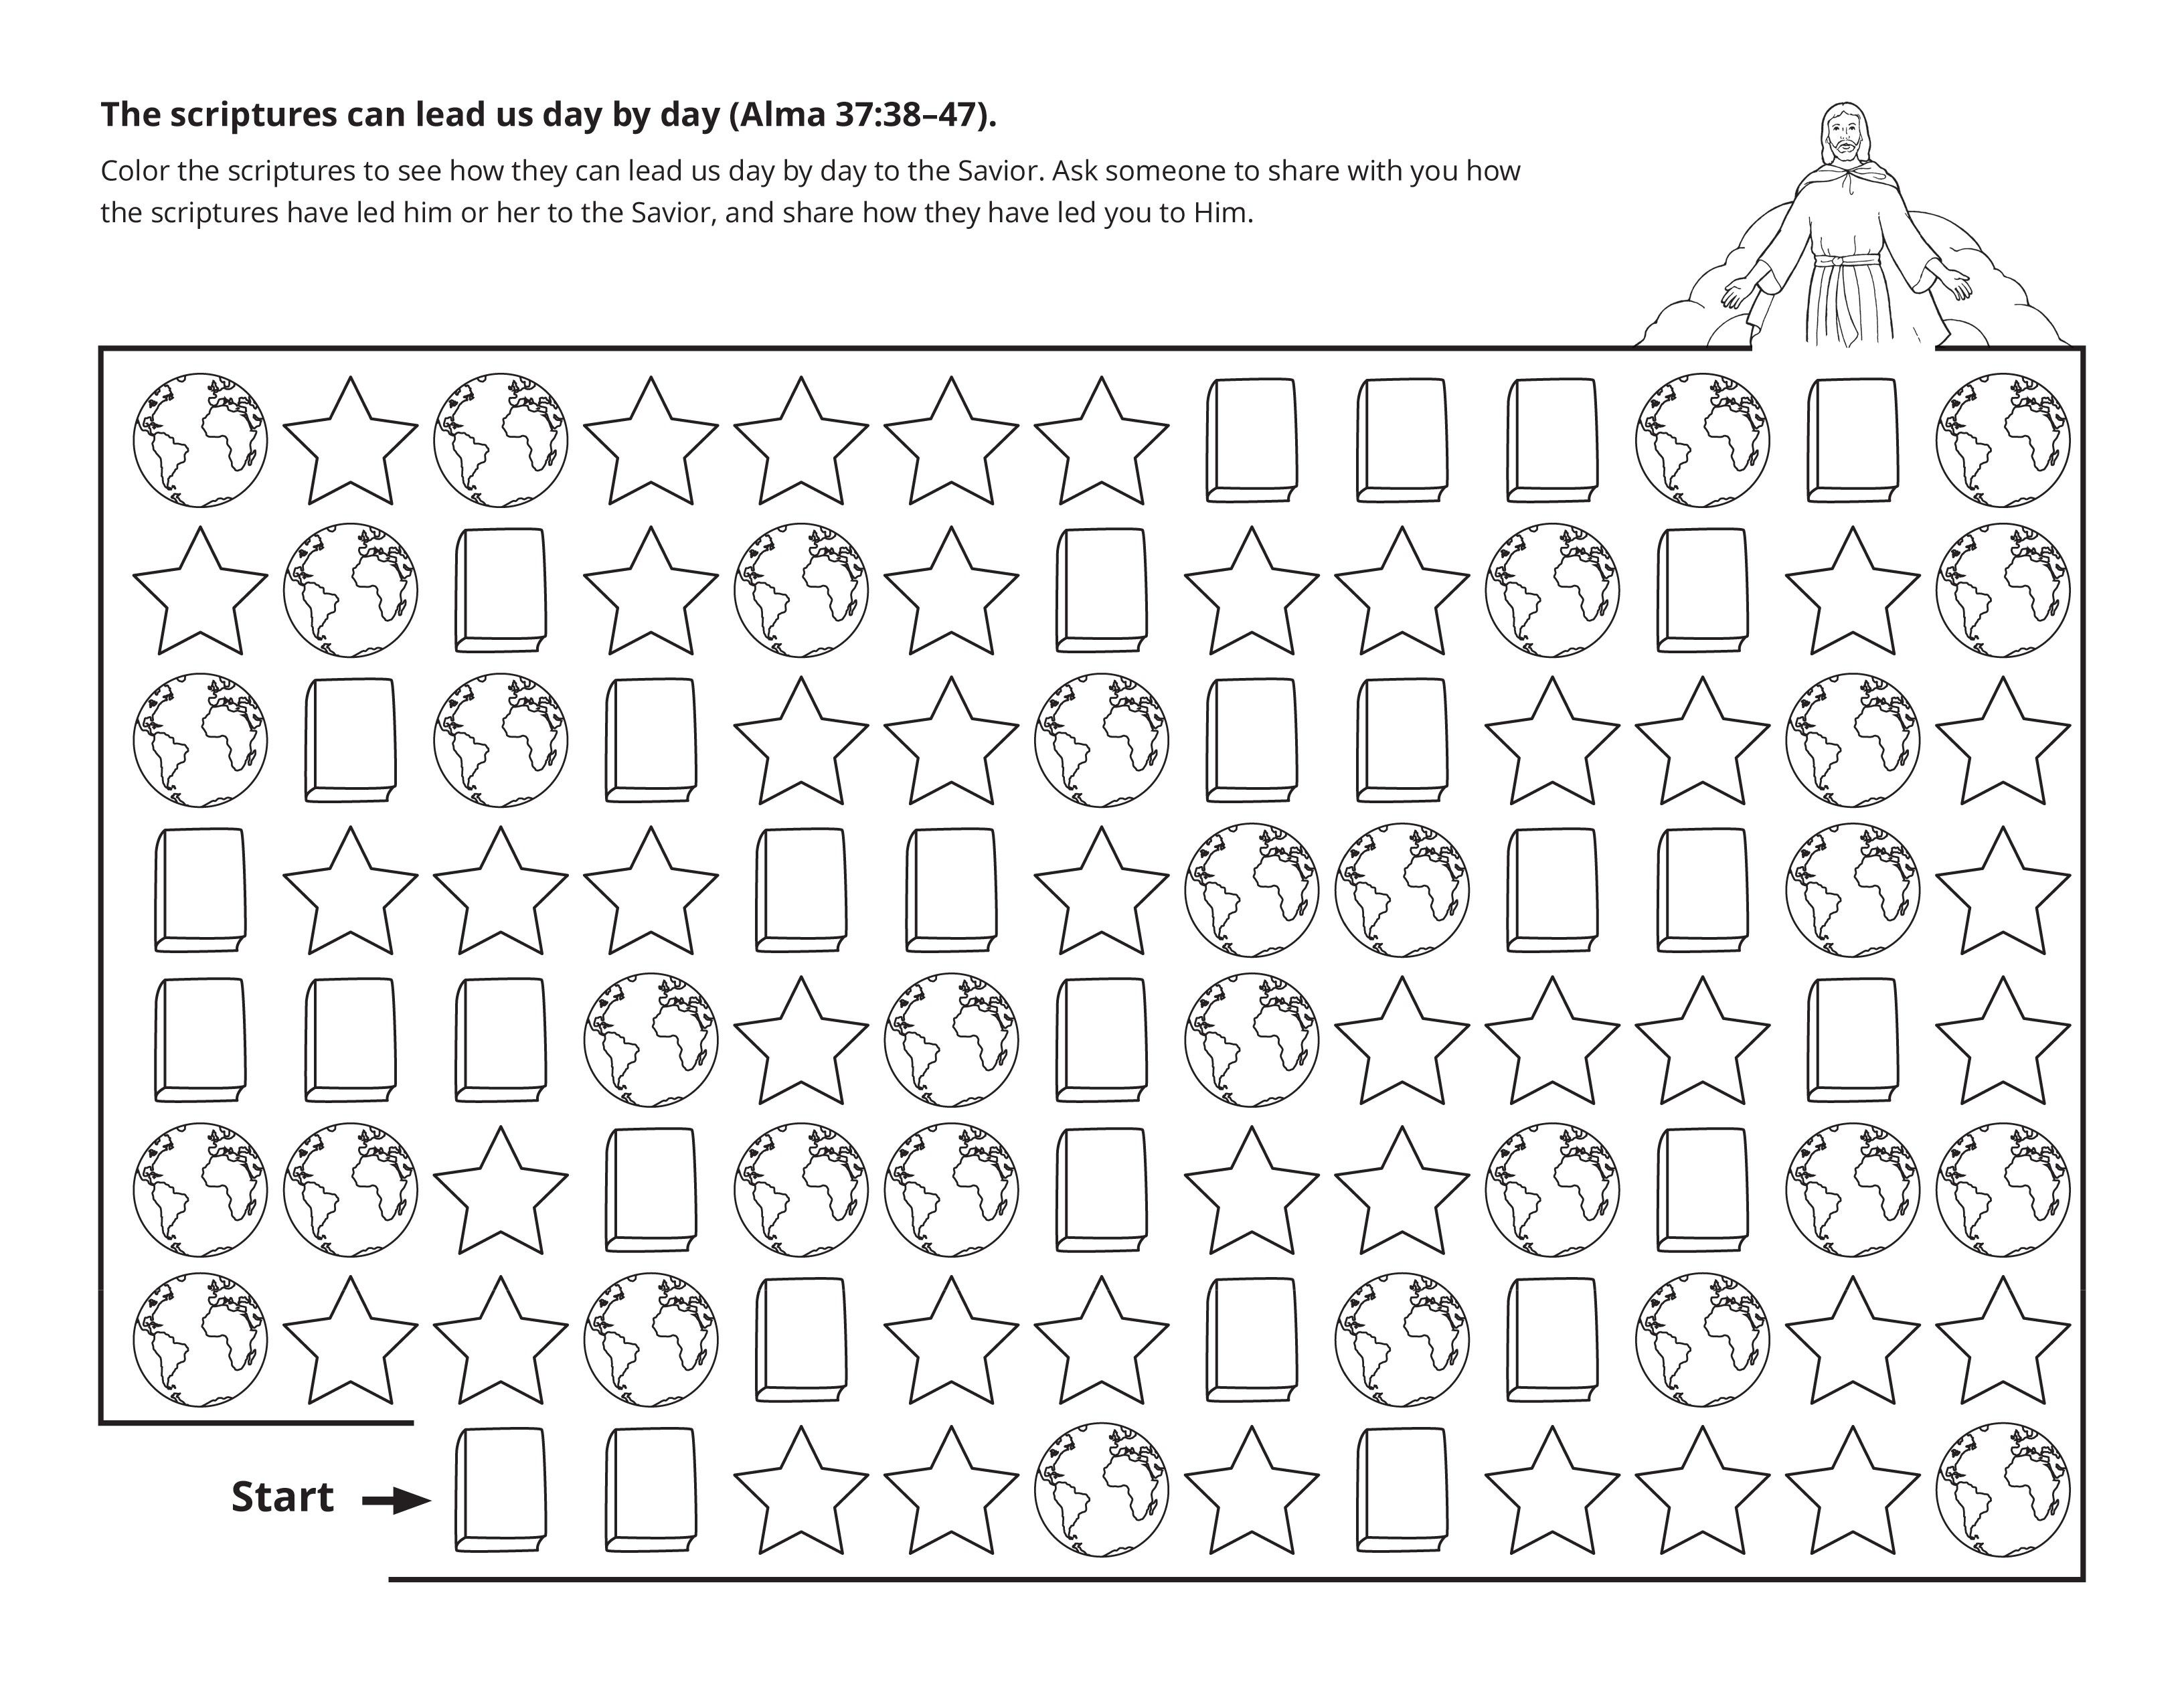 A maze activity showing how scriptures lead to the Savior.